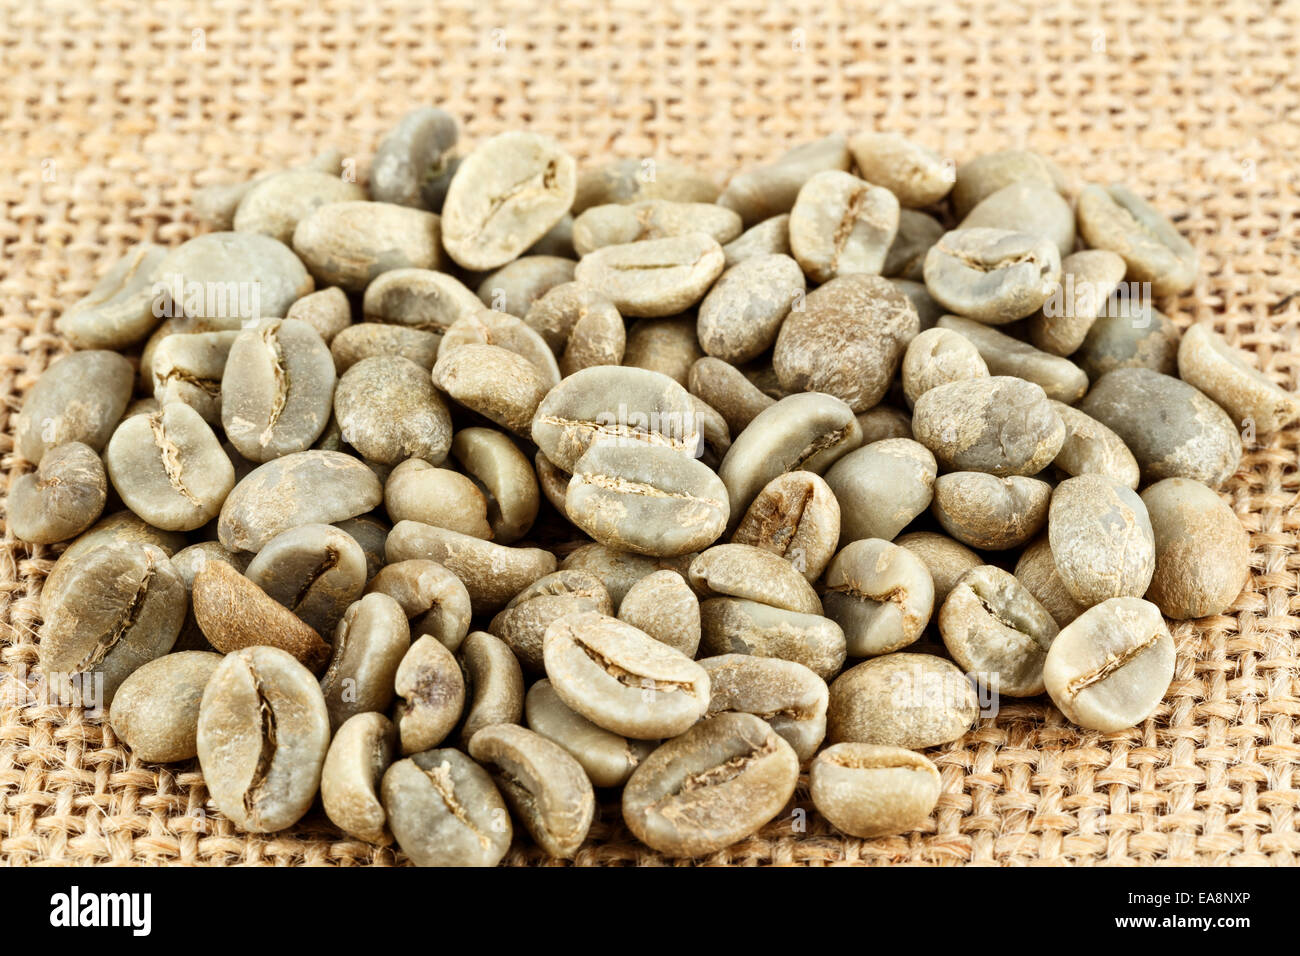 Green coffee beans shown on the canvas - Stock Image